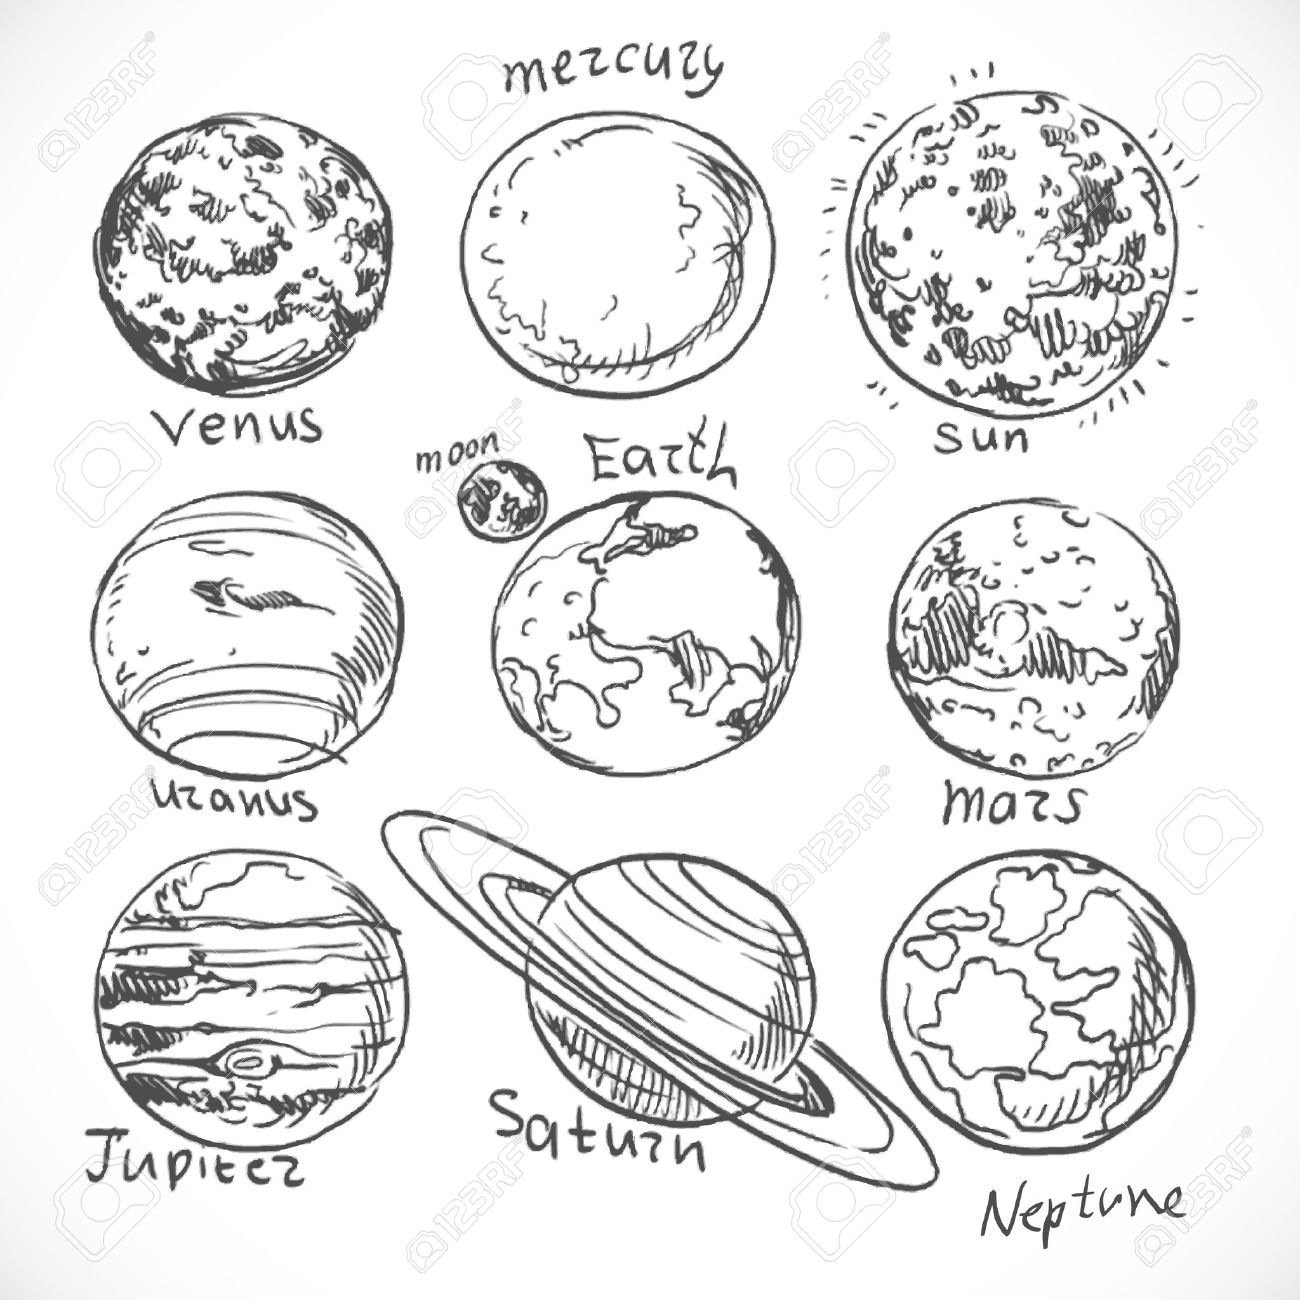 water on mars clipart black and white 20 free Cliparts ...